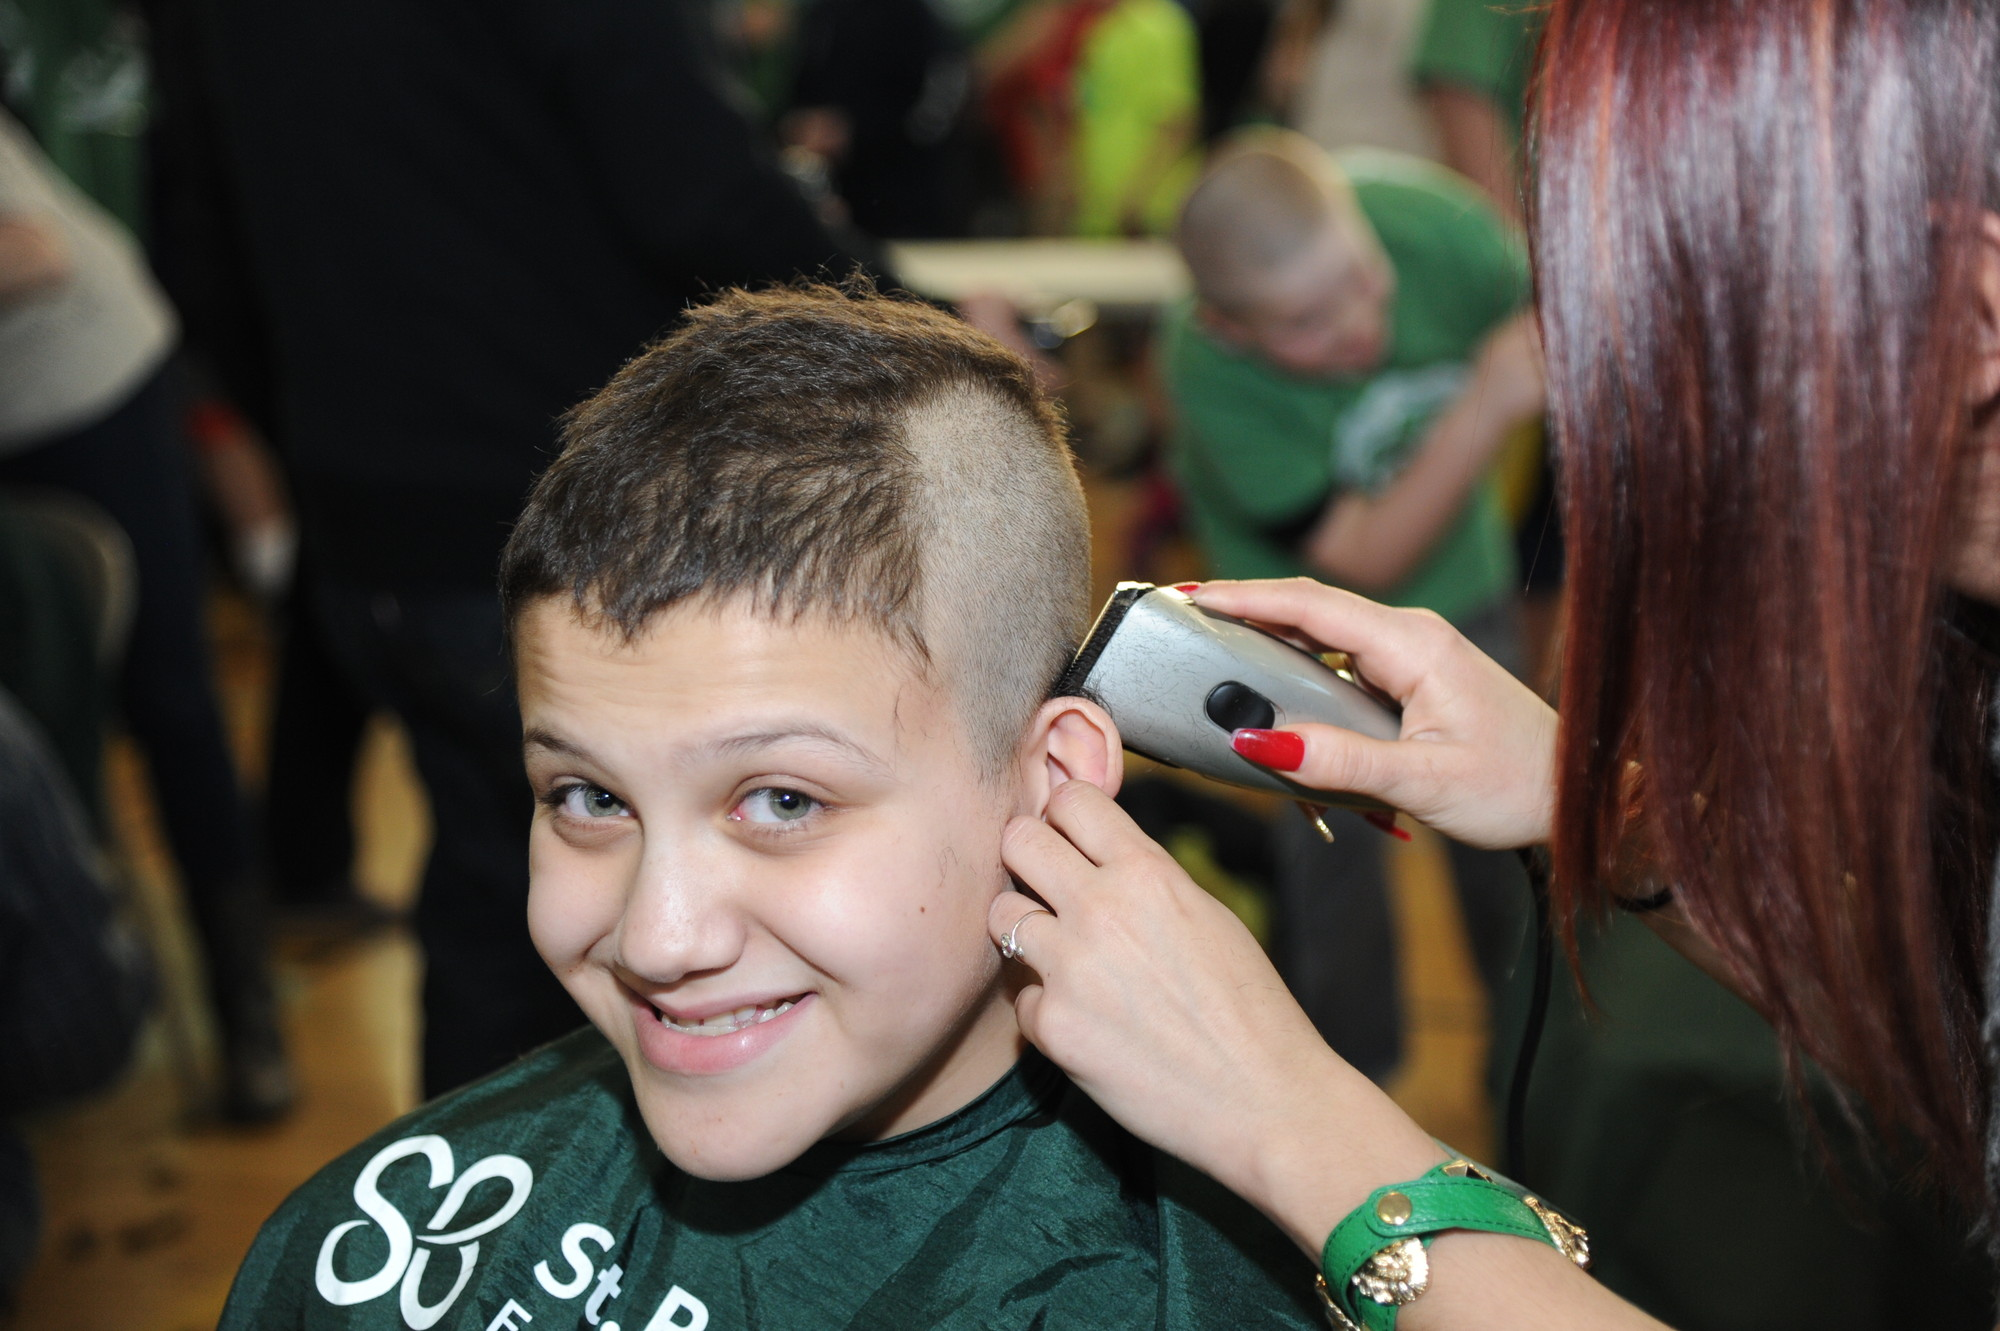 Kyle Berthoud, 13, made a $50 donation to St. Baldrick's before he had his head shaved.